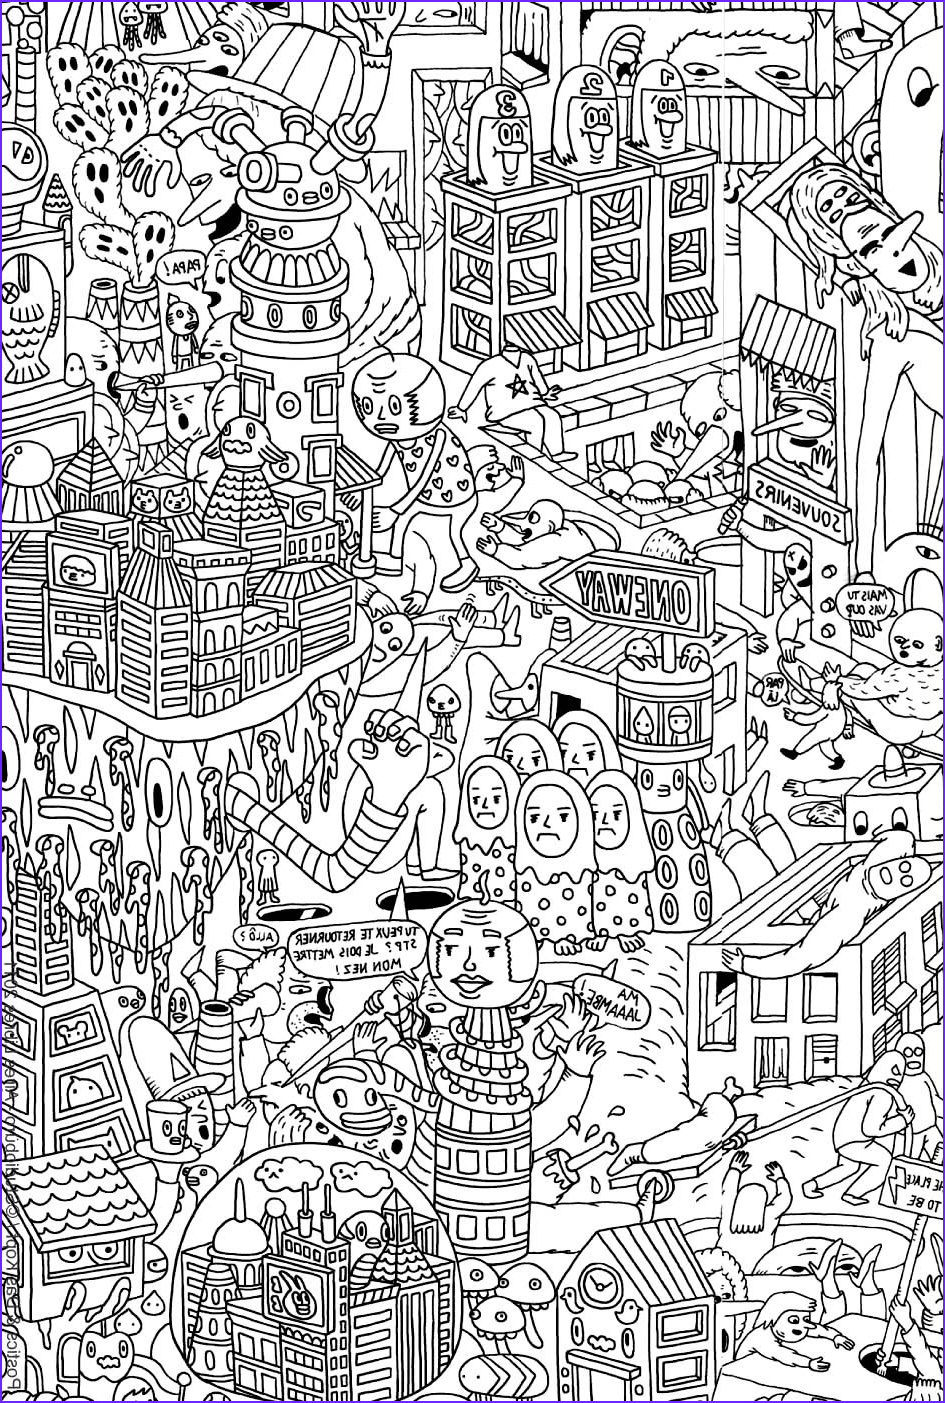 Color Art Coloring Book New Gallery Doodle Art Doodling 12 Doodle Art Doodling Adult